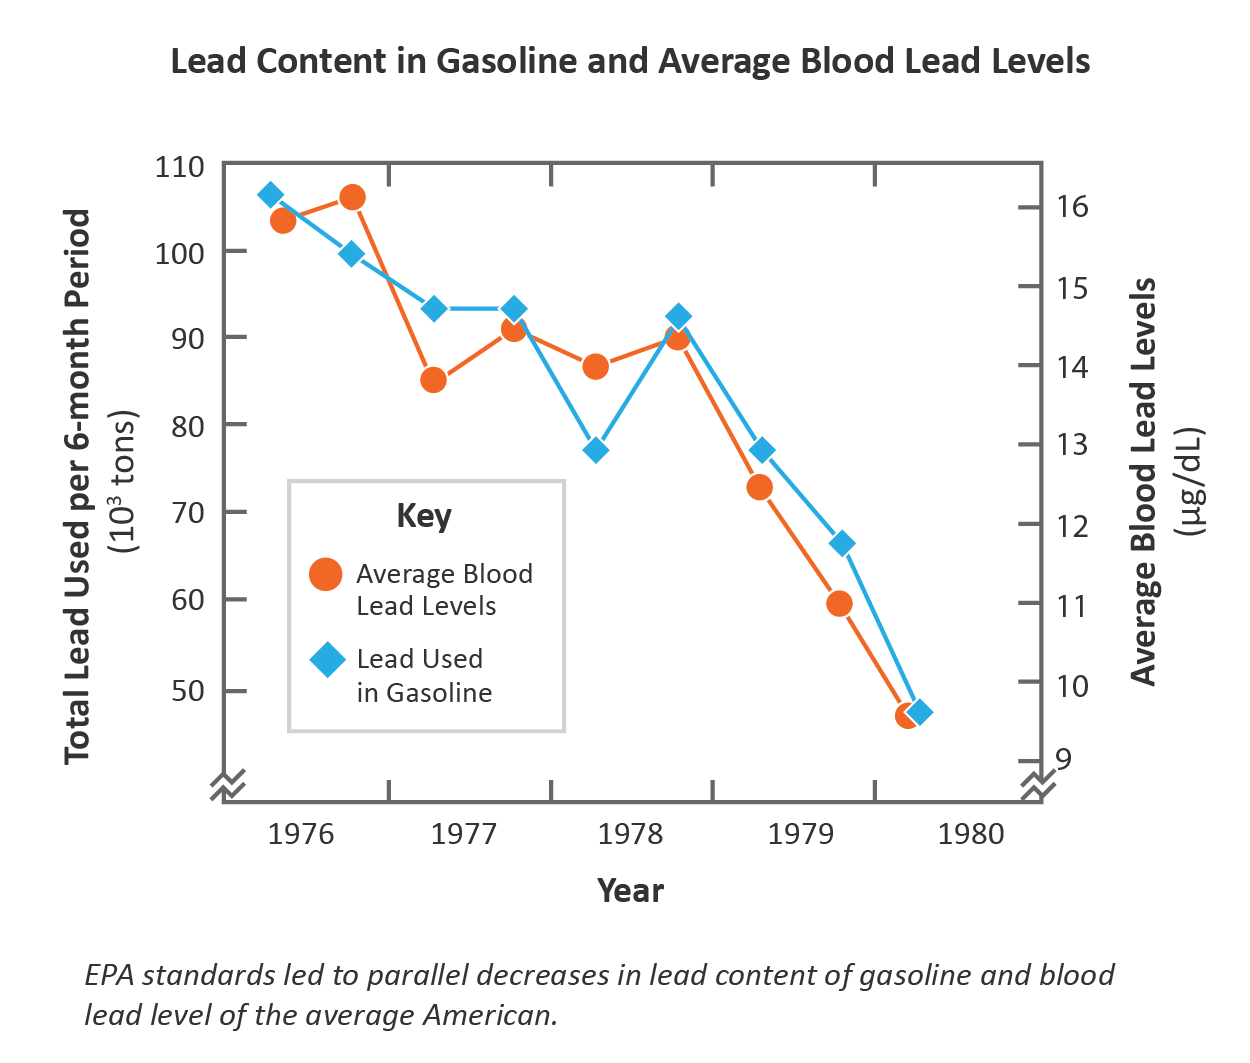 EPA standards led to parallel decrease in lead content of gasoline and blood lead level of the average American.